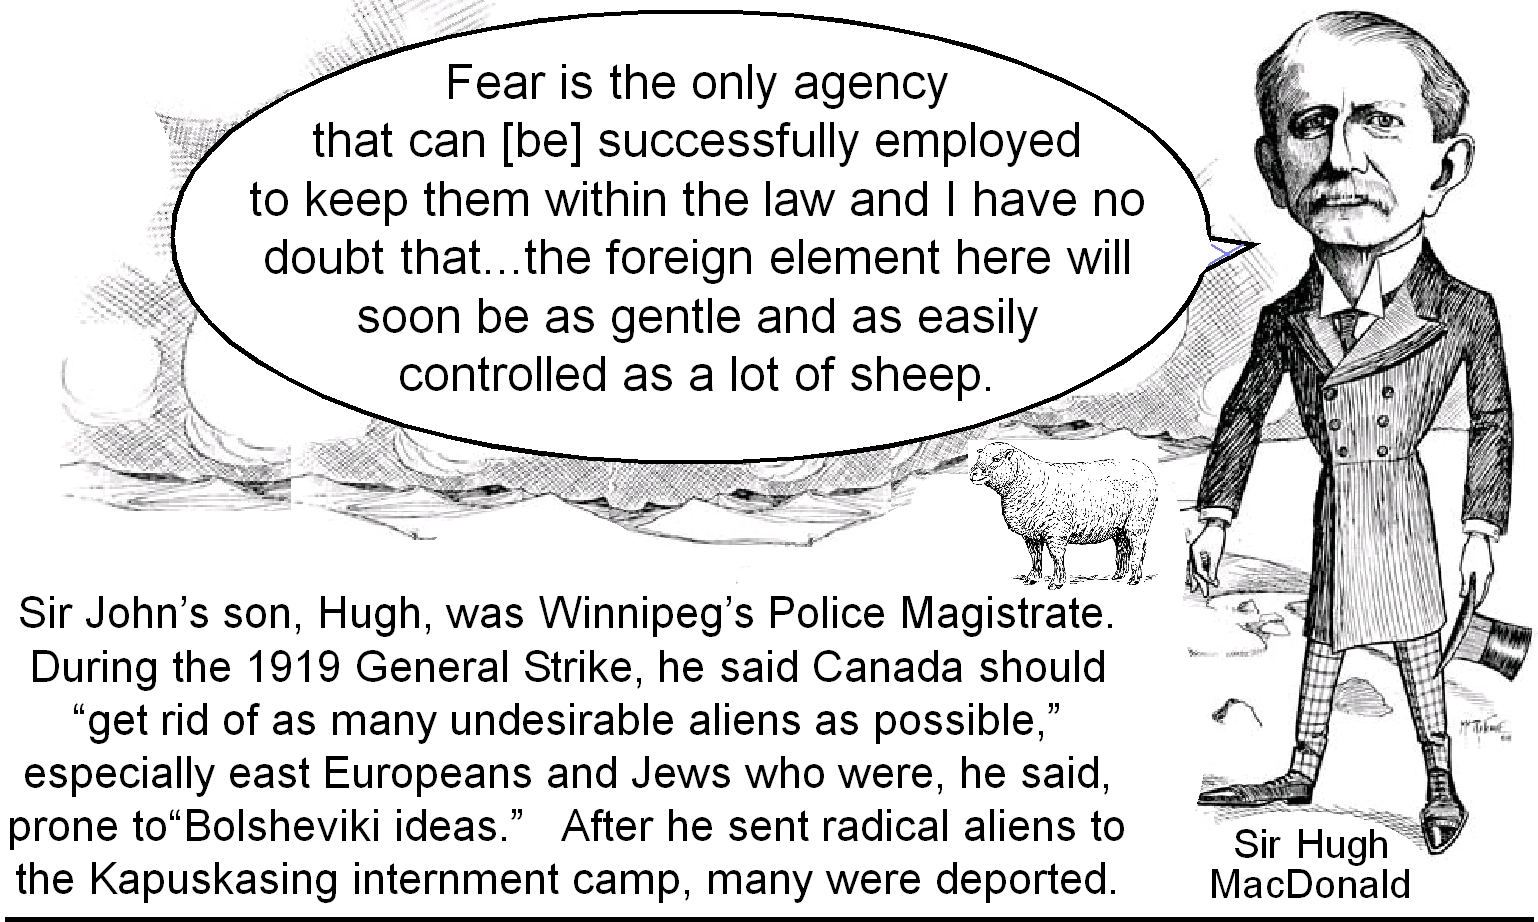 "Sir John's son Hugh, Winnipeg's Police magistrate, said Canada should ""get rid of as many undesirable aliens as possible"" especially east Europeans and Jews who he said were prone to ""Bolsheviki ideas."""